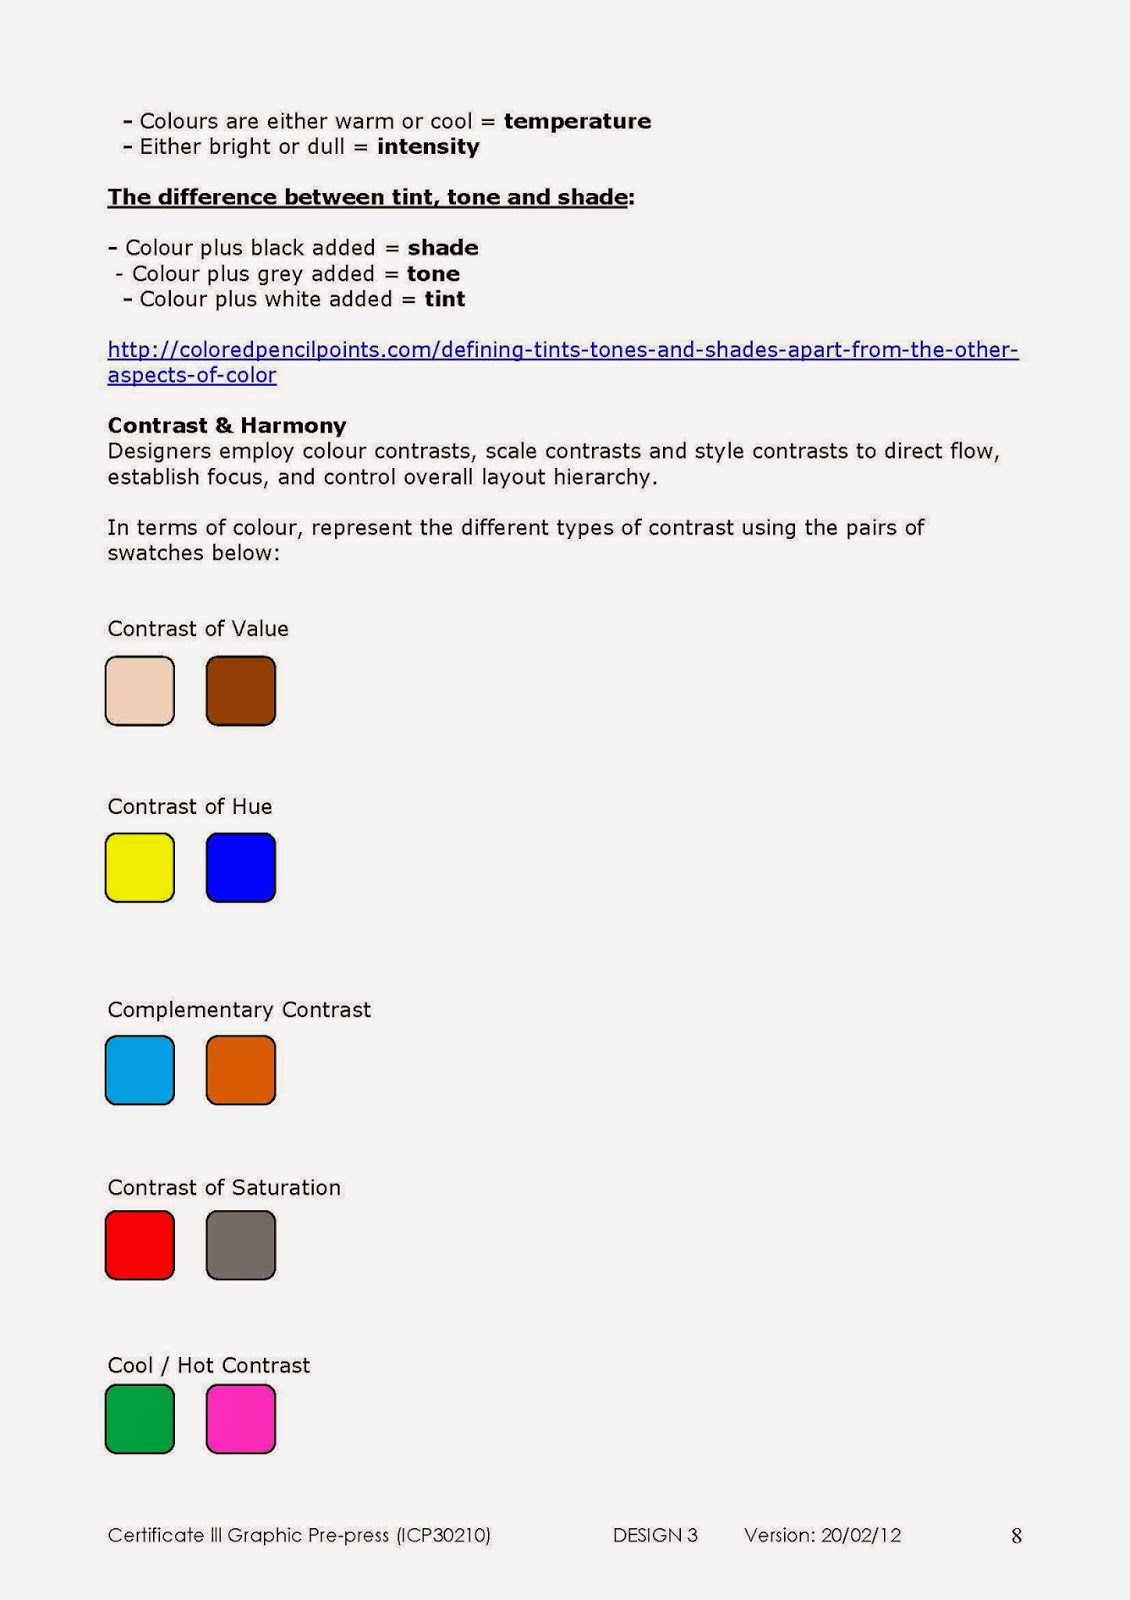 Properties of Colour